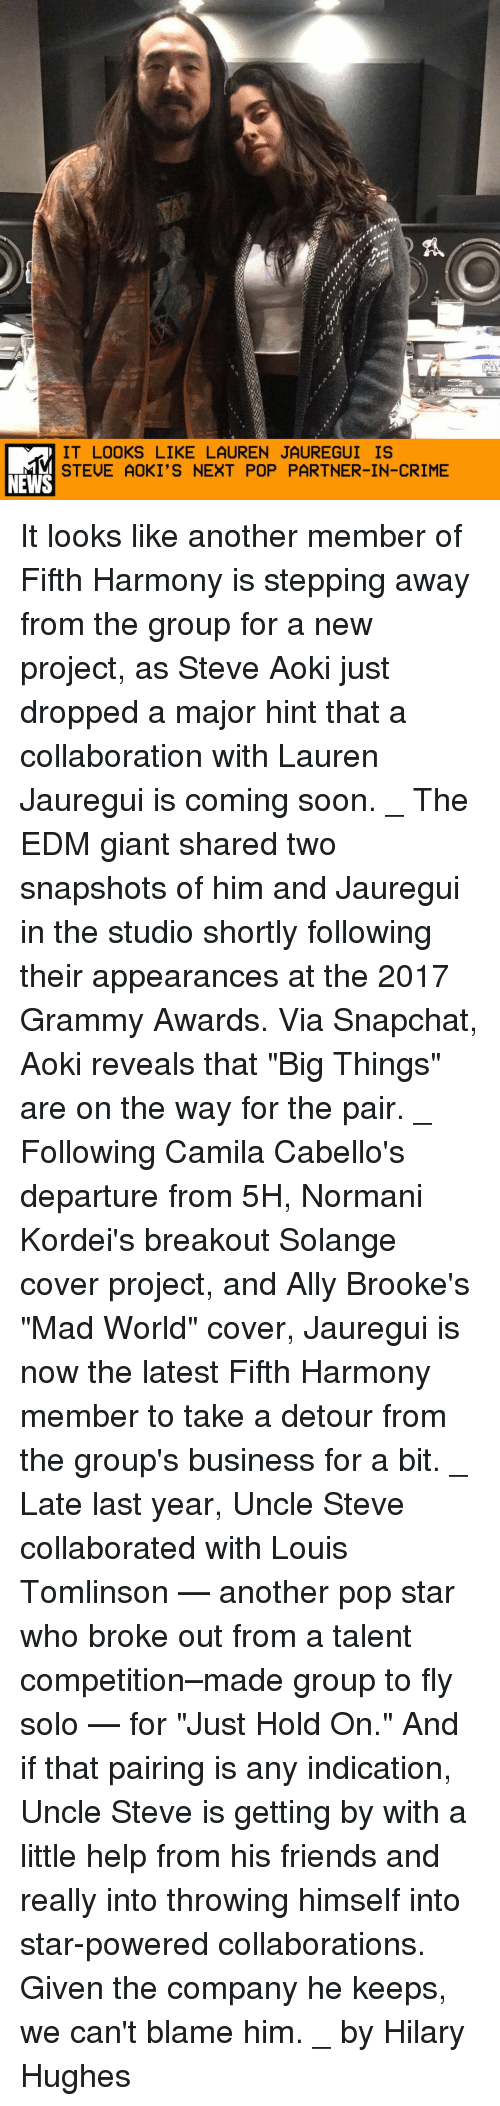 "indicative: IT LOOKS LIKE LAUREN JAUREGUI IS  STEUE AOKI'S NEXT POP PARTNER-IN-CRIME  NEWS It looks like another member of Fifth Harmony is stepping away from the group for a new project, as Steve Aoki just dropped a major hint that a collaboration with Lauren Jauregui is coming soon. _ The EDM giant shared two snapshots of him and Jauregui in the studio shortly following their appearances at the 2017 Grammy Awards. Via Snapchat, Aoki reveals that ""Big Things"" are on the way for the pair. _ Following Camila Cabello's departure from 5H, Normani Kordei's breakout Solange cover project, and Ally Brooke's ""Mad World"" cover, Jauregui is now the latest Fifth Harmony member to take a detour from the group's business for a bit. _ Late last year, Uncle Steve collaborated with Louis Tomlinson — another pop star who broke out from a talent competition–made group to fly solo — for ""Just Hold On."" And if that pairing is any indication, Uncle Steve is getting by with a little help from his friends and really into throwing himself into star-powered collaborations. Given the company he keeps, we can't blame him. _ by Hilary Hughes"